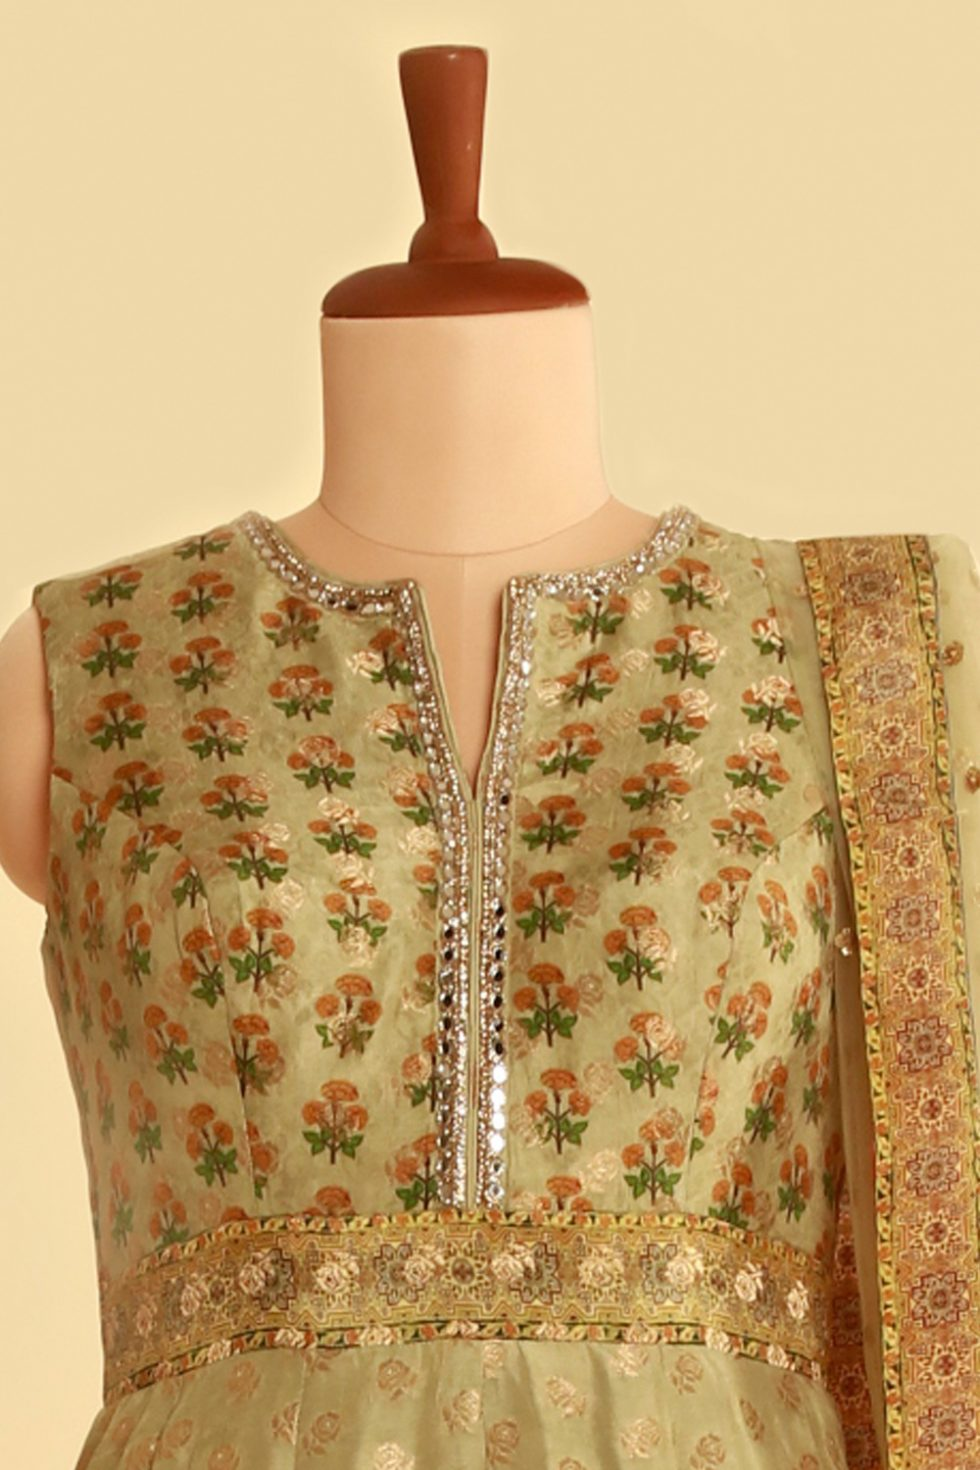 Green printed banarasi anarkali gown set with gold and silver details and matching dupatta